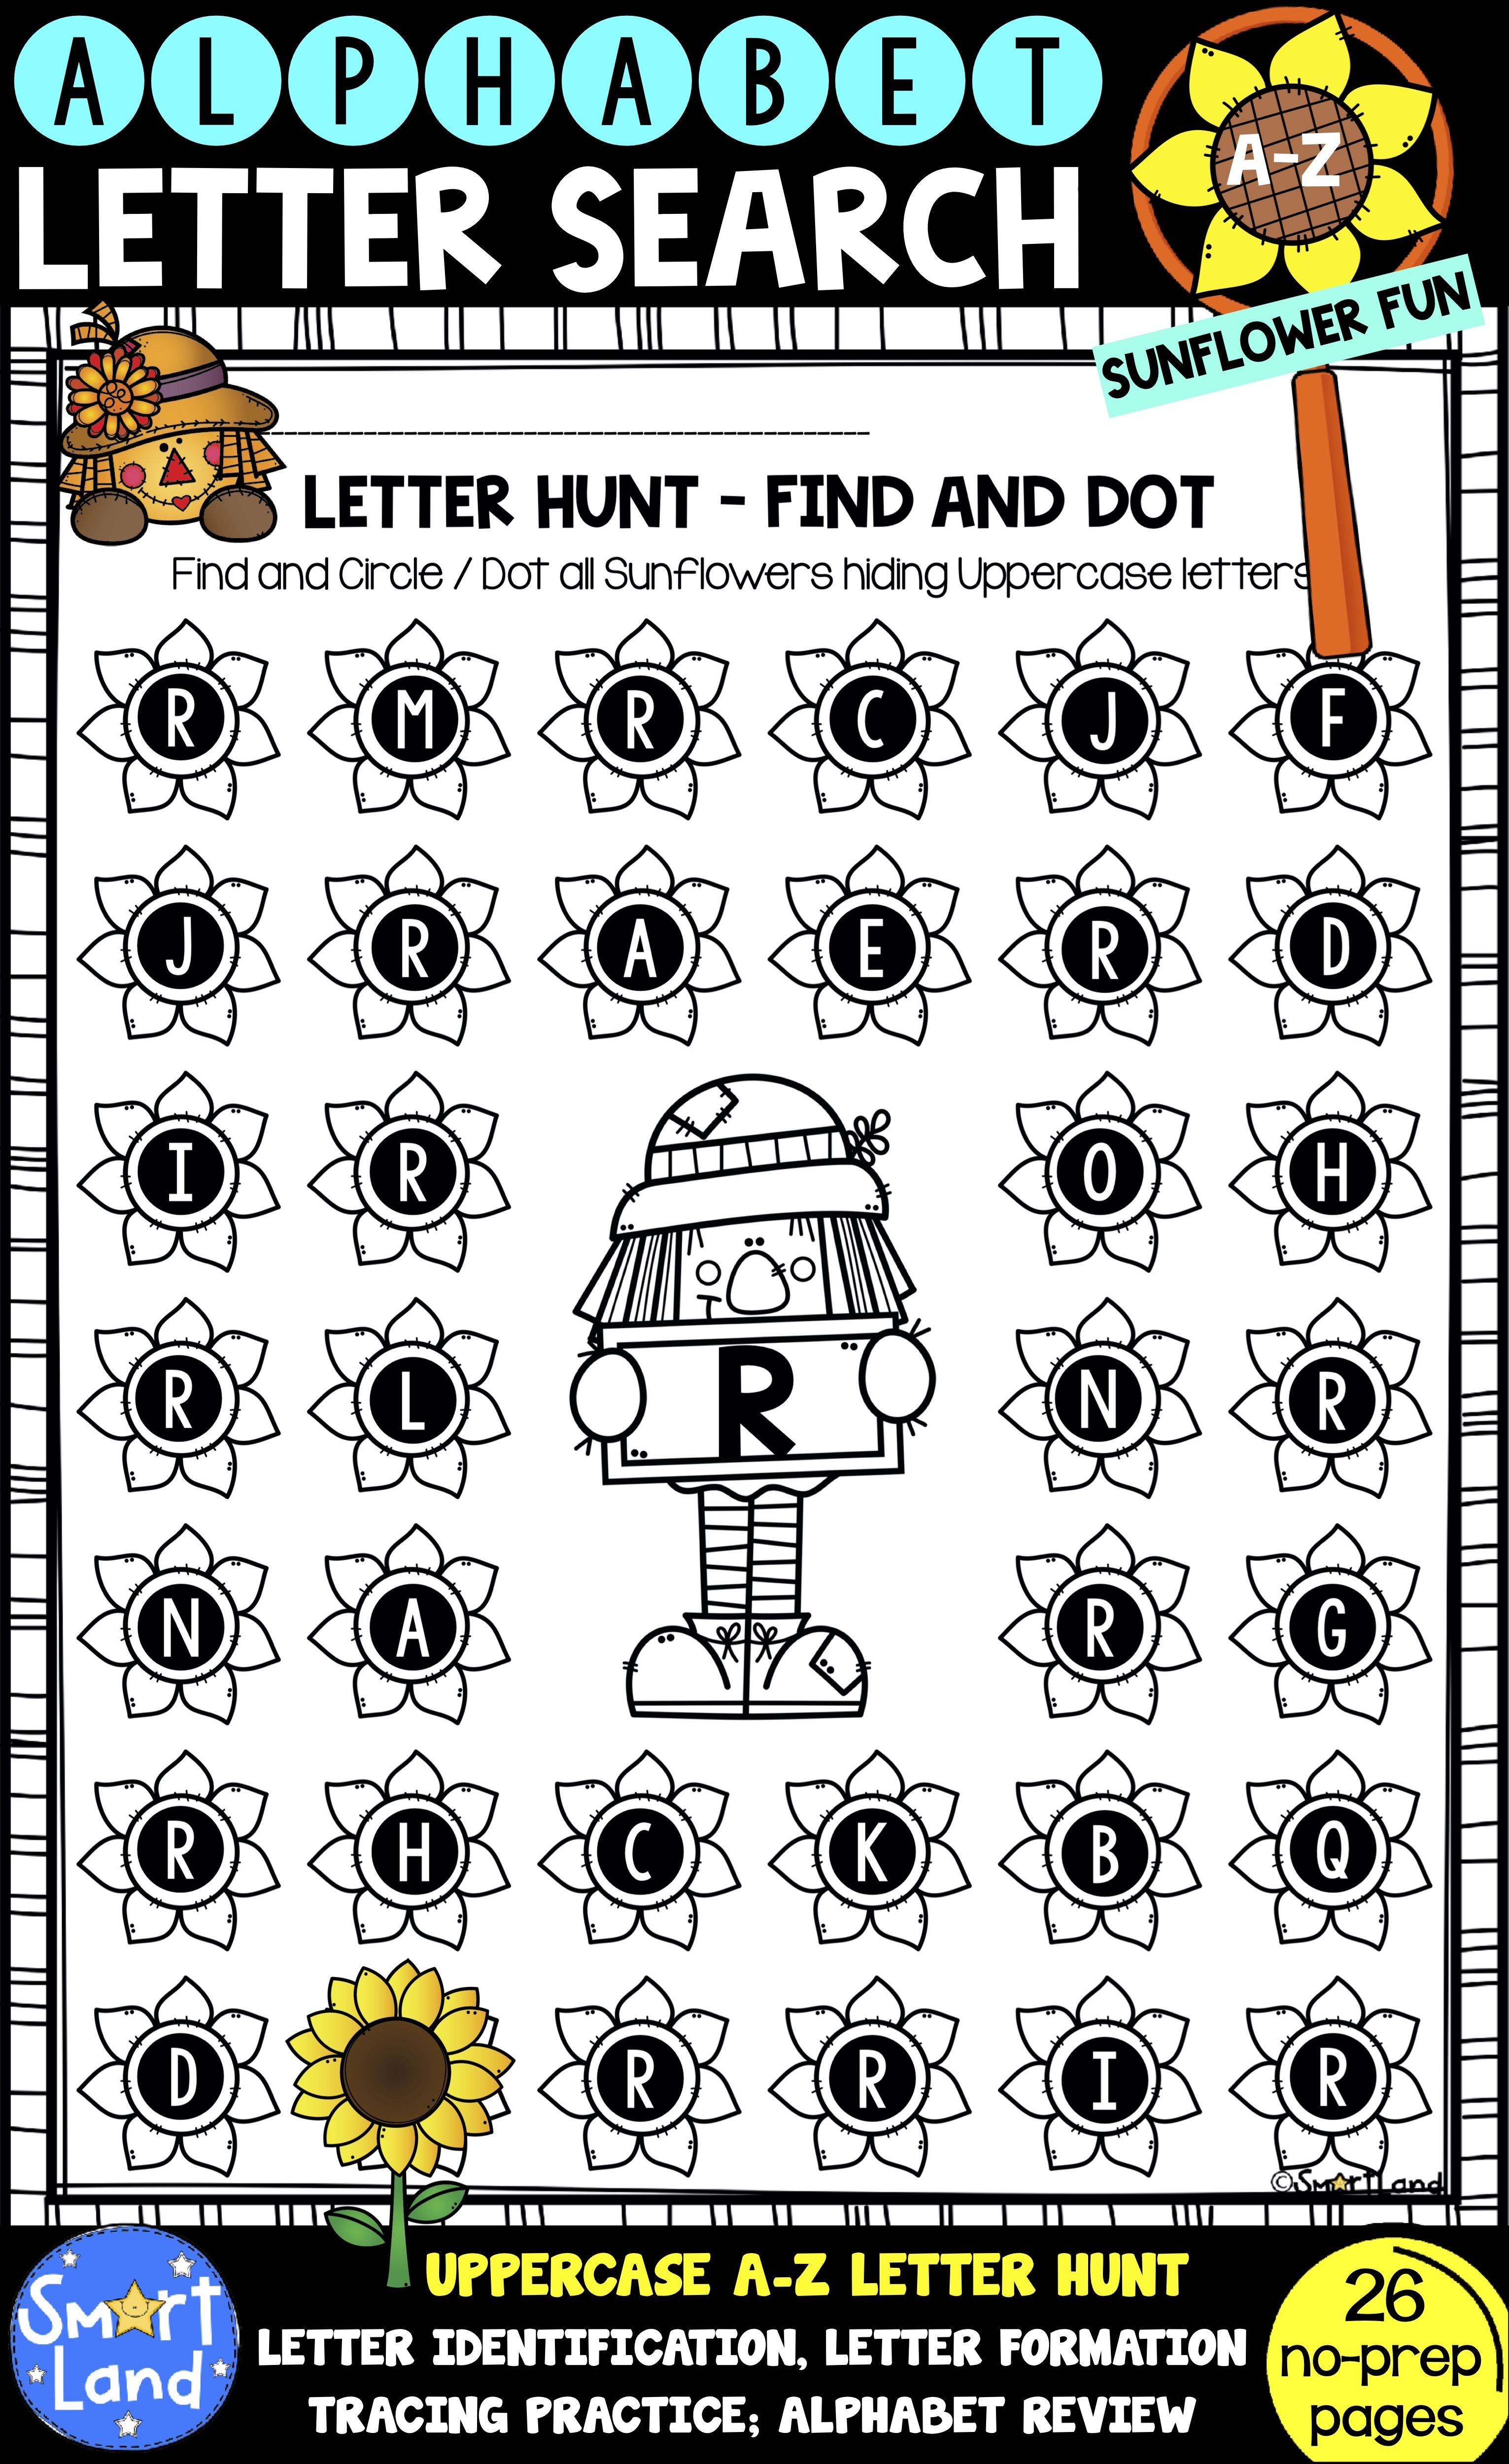 Alphabet Practice Worksheets Letter Search Sunflower Fun Alphabet Practice Alphabet Practice Worksheets Pre Writing Practice